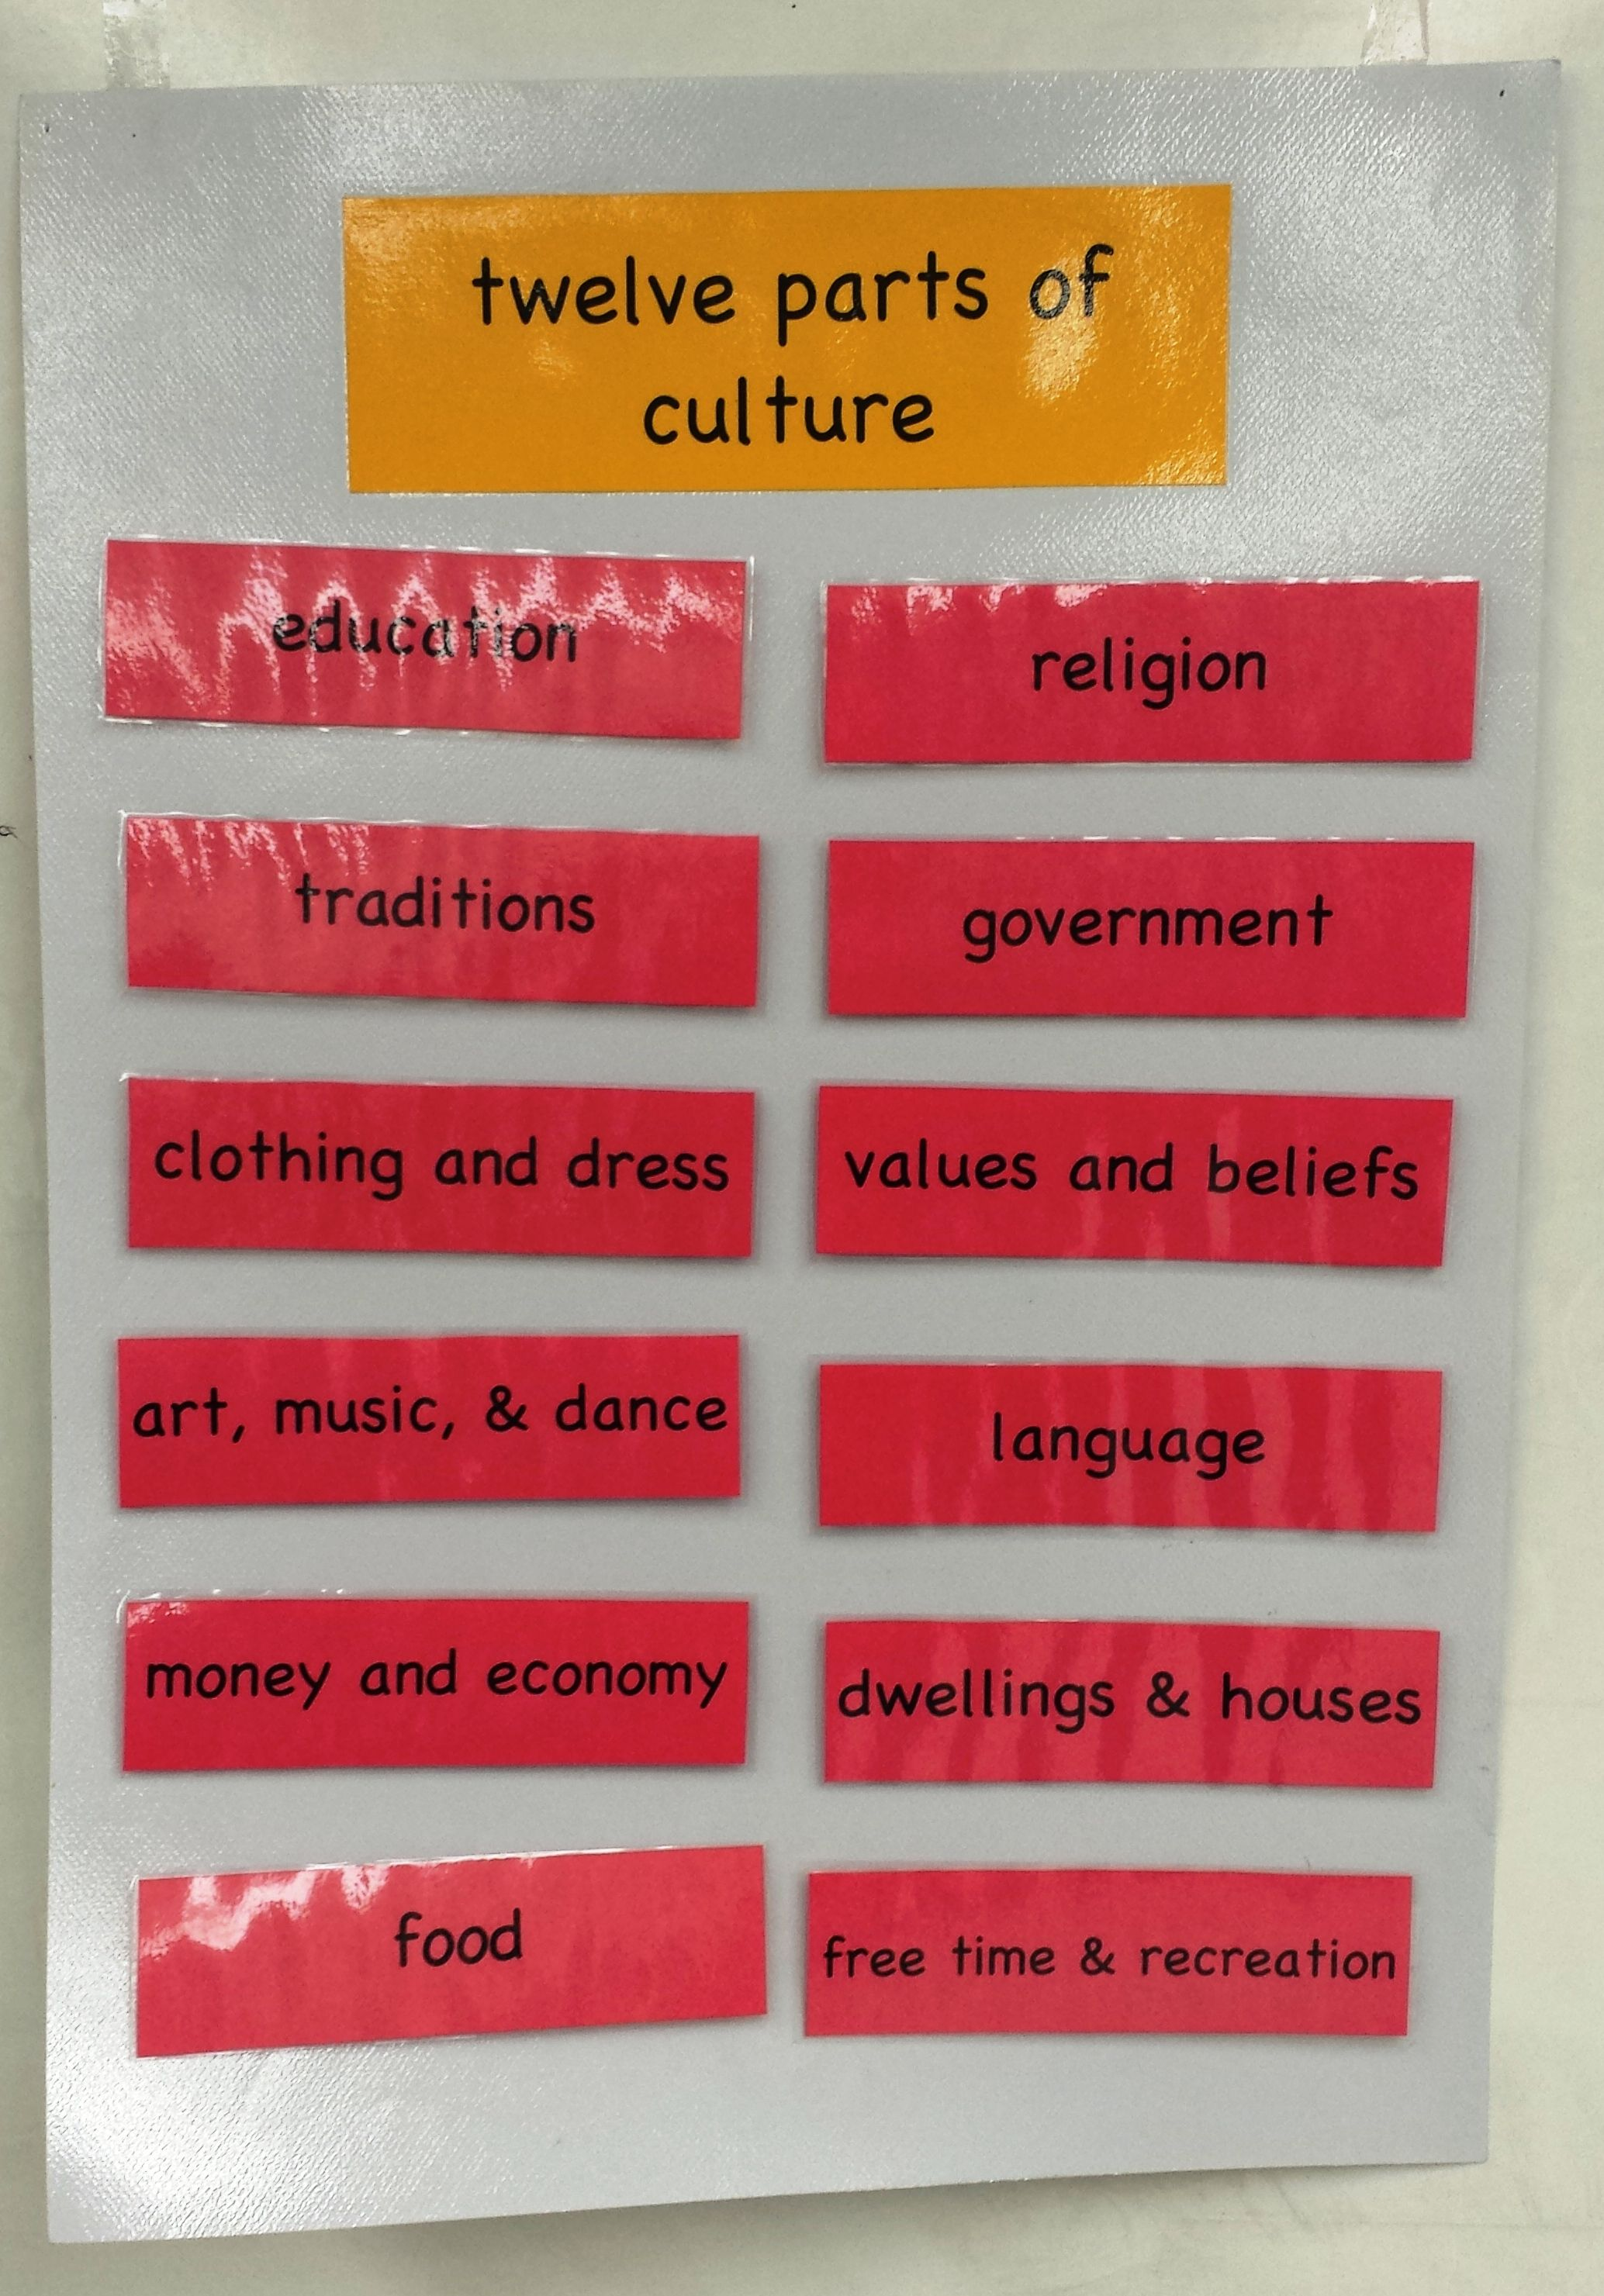 12 aspects of culture